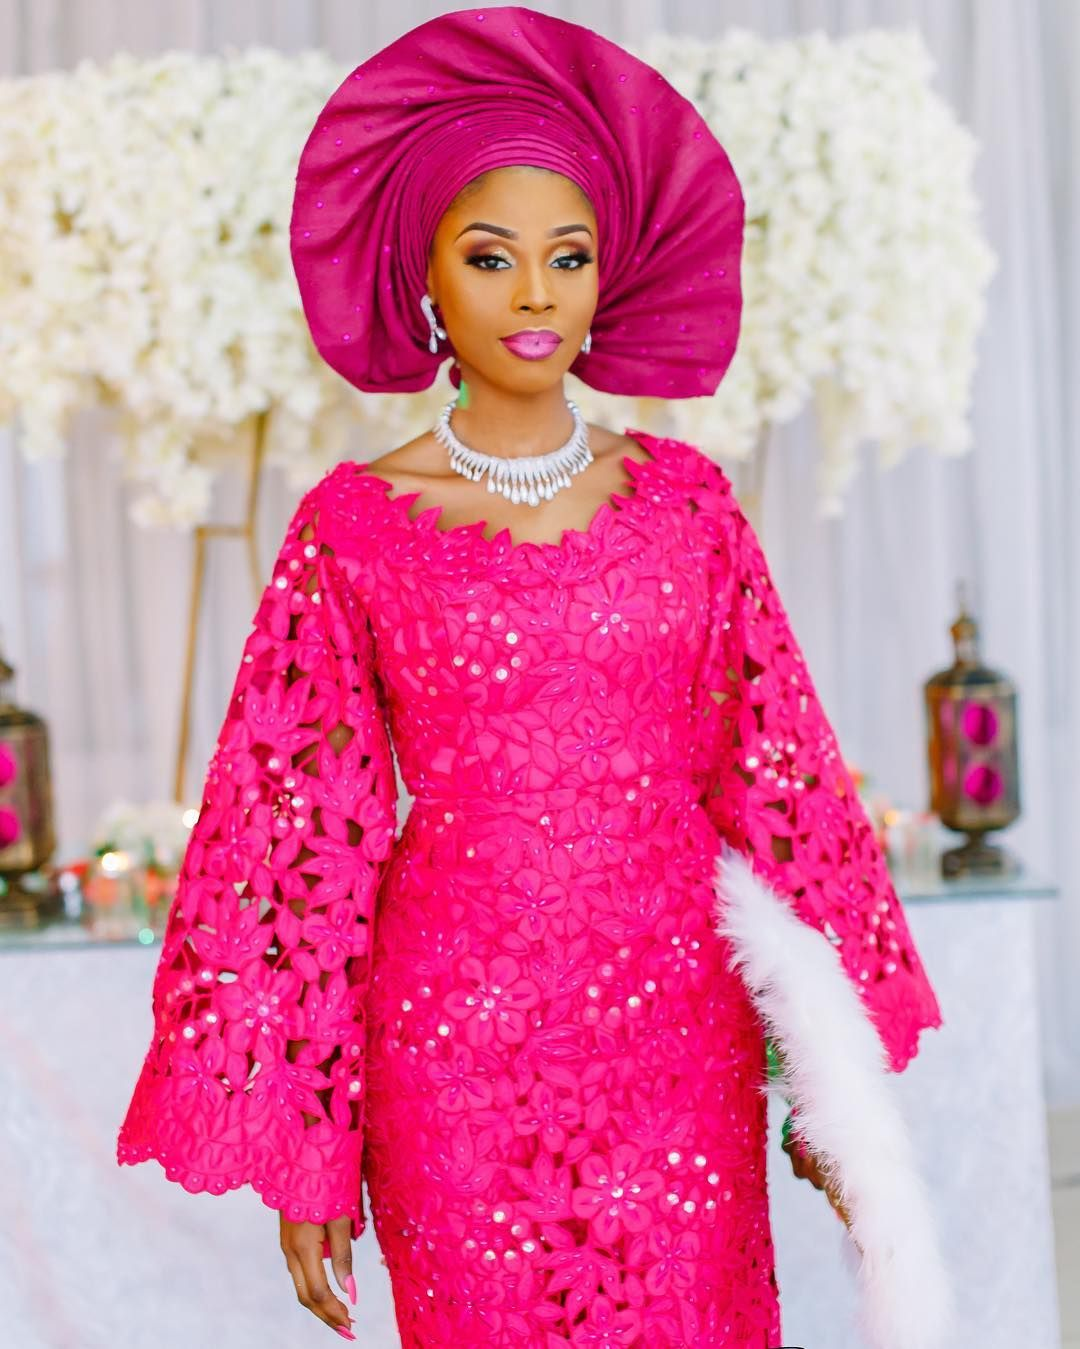 306 Likes, 1 Comments - Official Page Wedding Nigeria ...